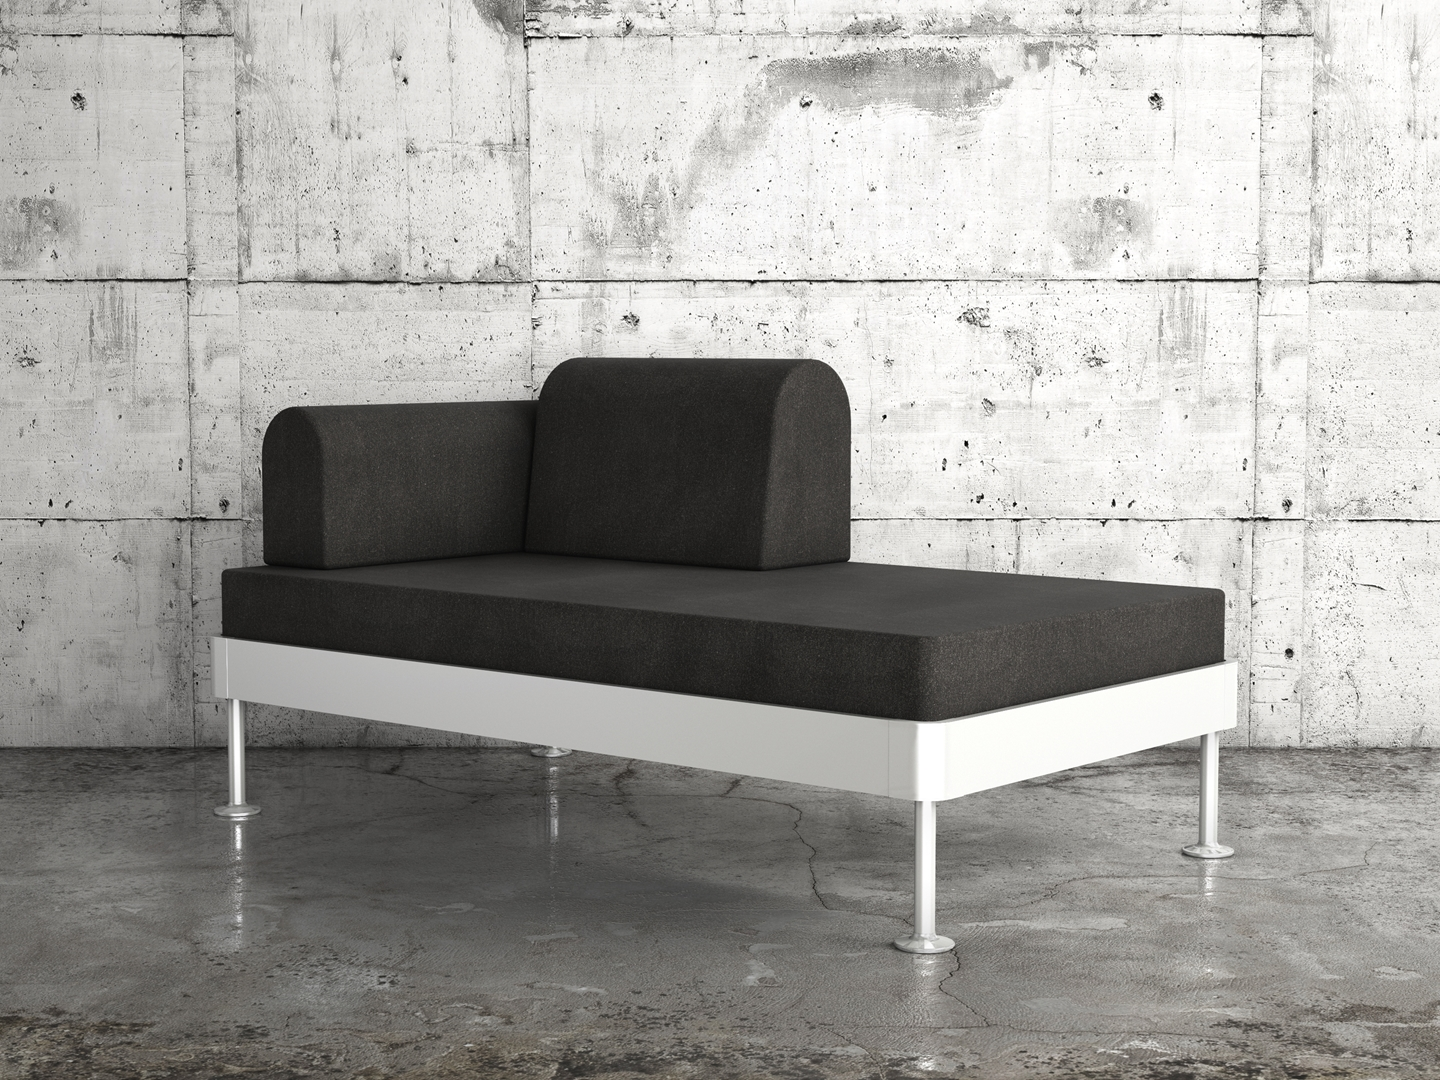 DELAKTIG Sofa-Bed TOM DIXON X IKEA (Copy)